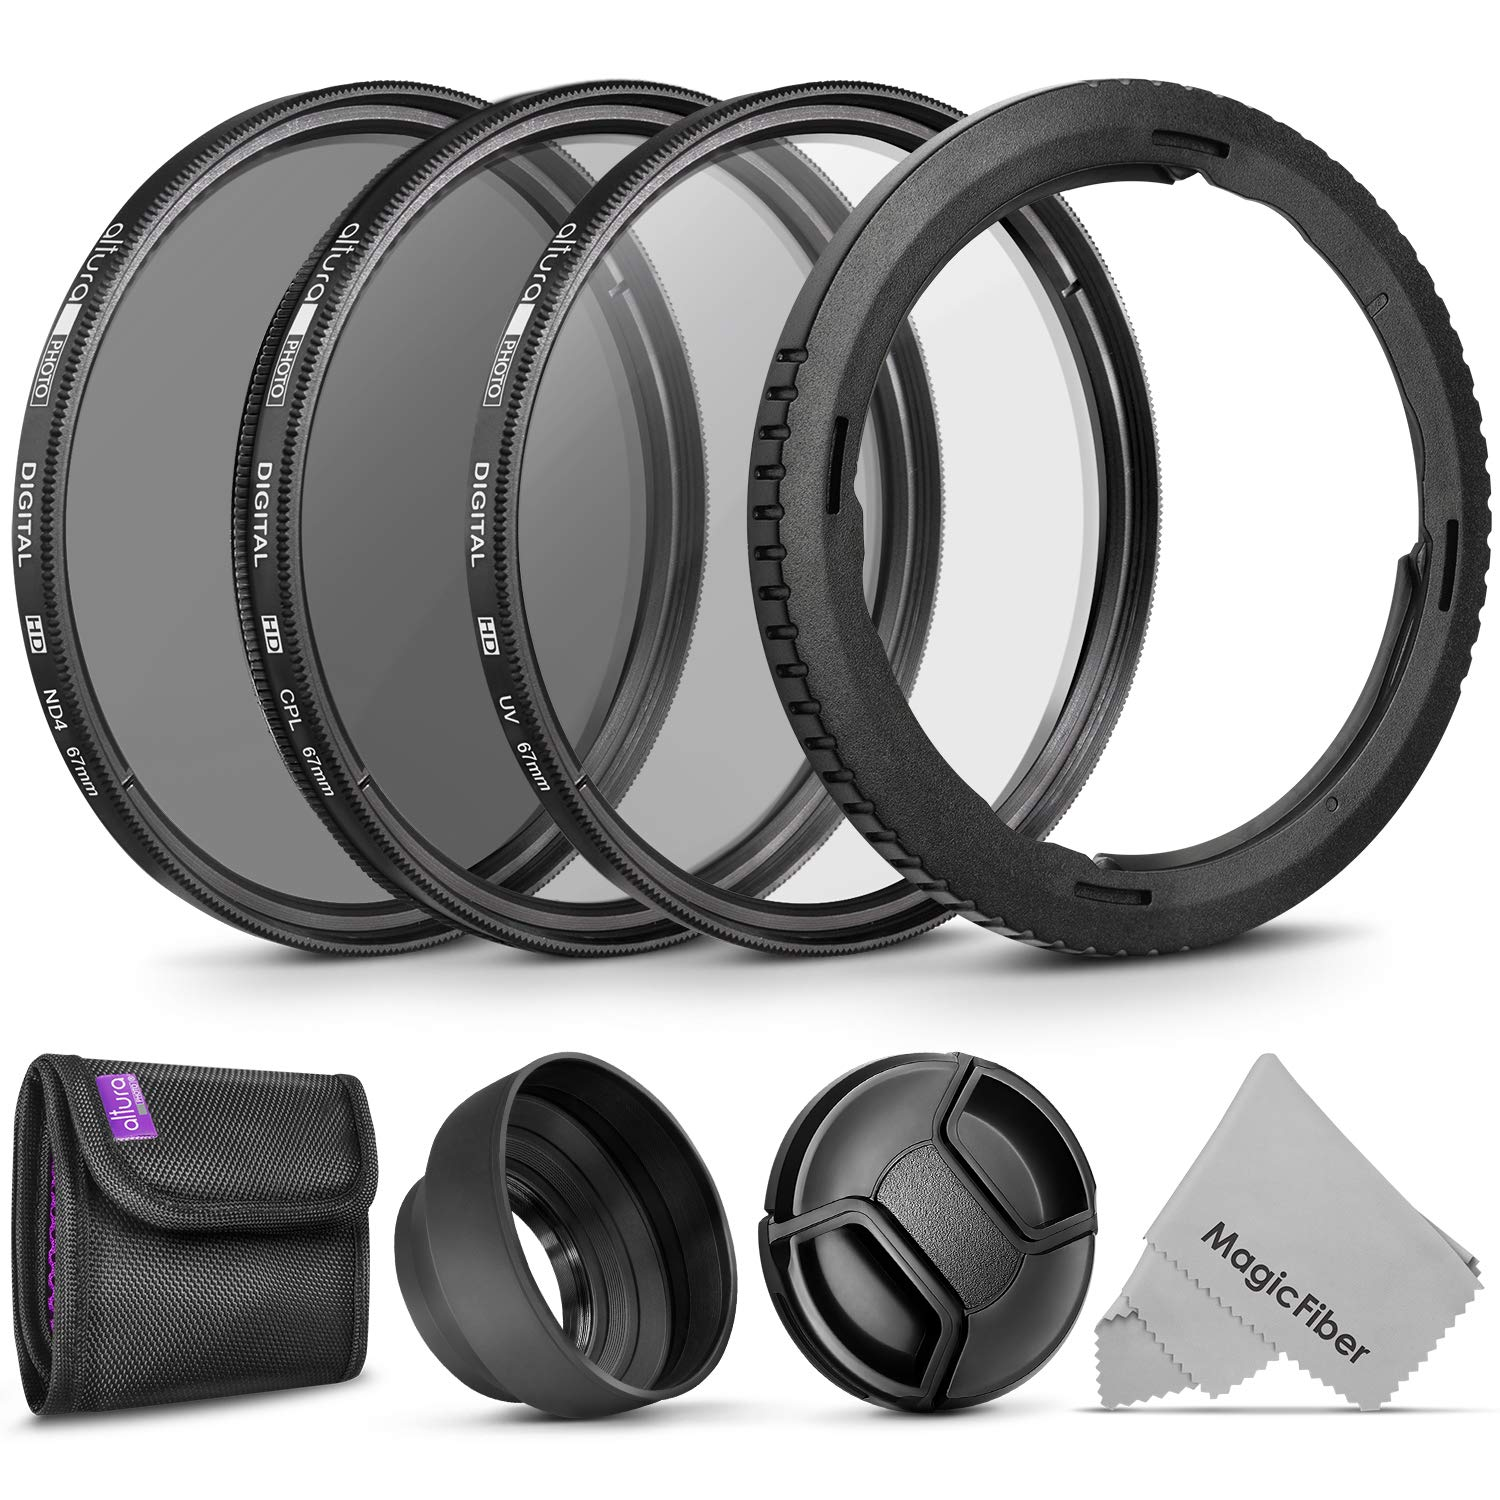 Essential Accessory Kit for Canon PowerShot SX530, SX520, SX70, SX60, SX50, SX40 HS - Includes: Filter Adapter Ring + Altura Photo Filter Kit (UV-CPL-ND4) + Collapsible Rubber Lens Hood + Lens Cap by Altura Photo